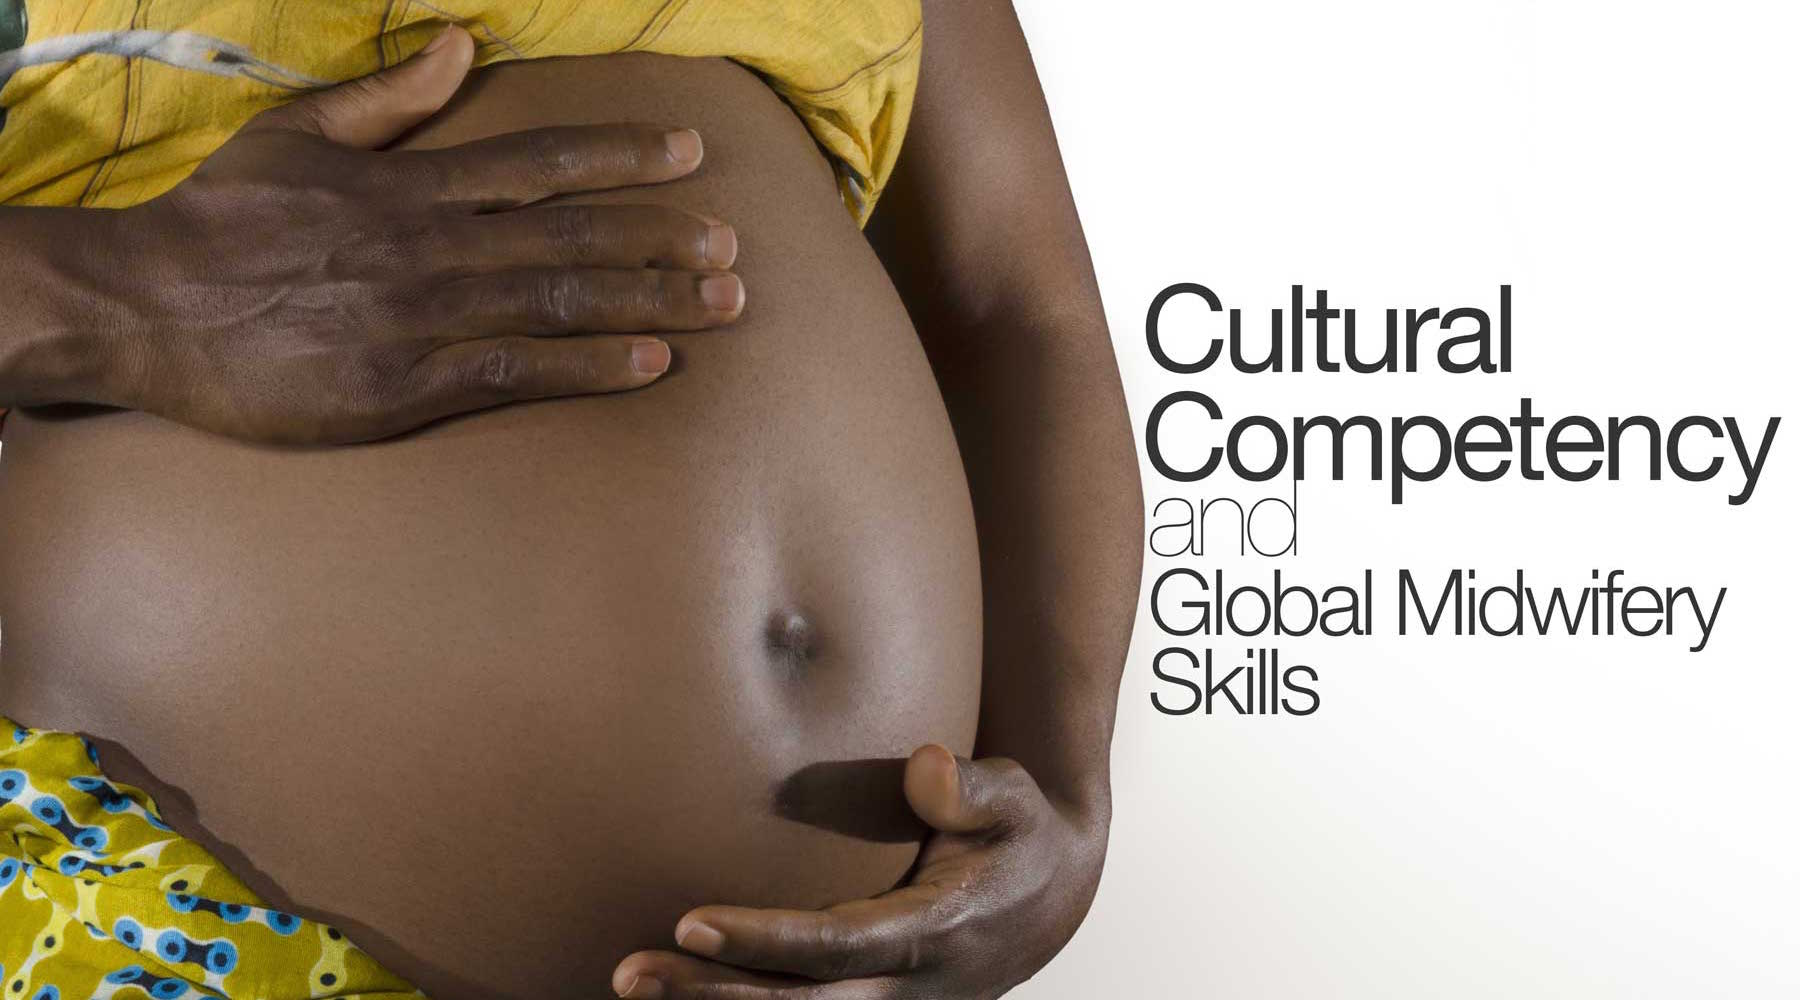 Cultural-competency-and-global-midwifery-skills-cropped.jpg